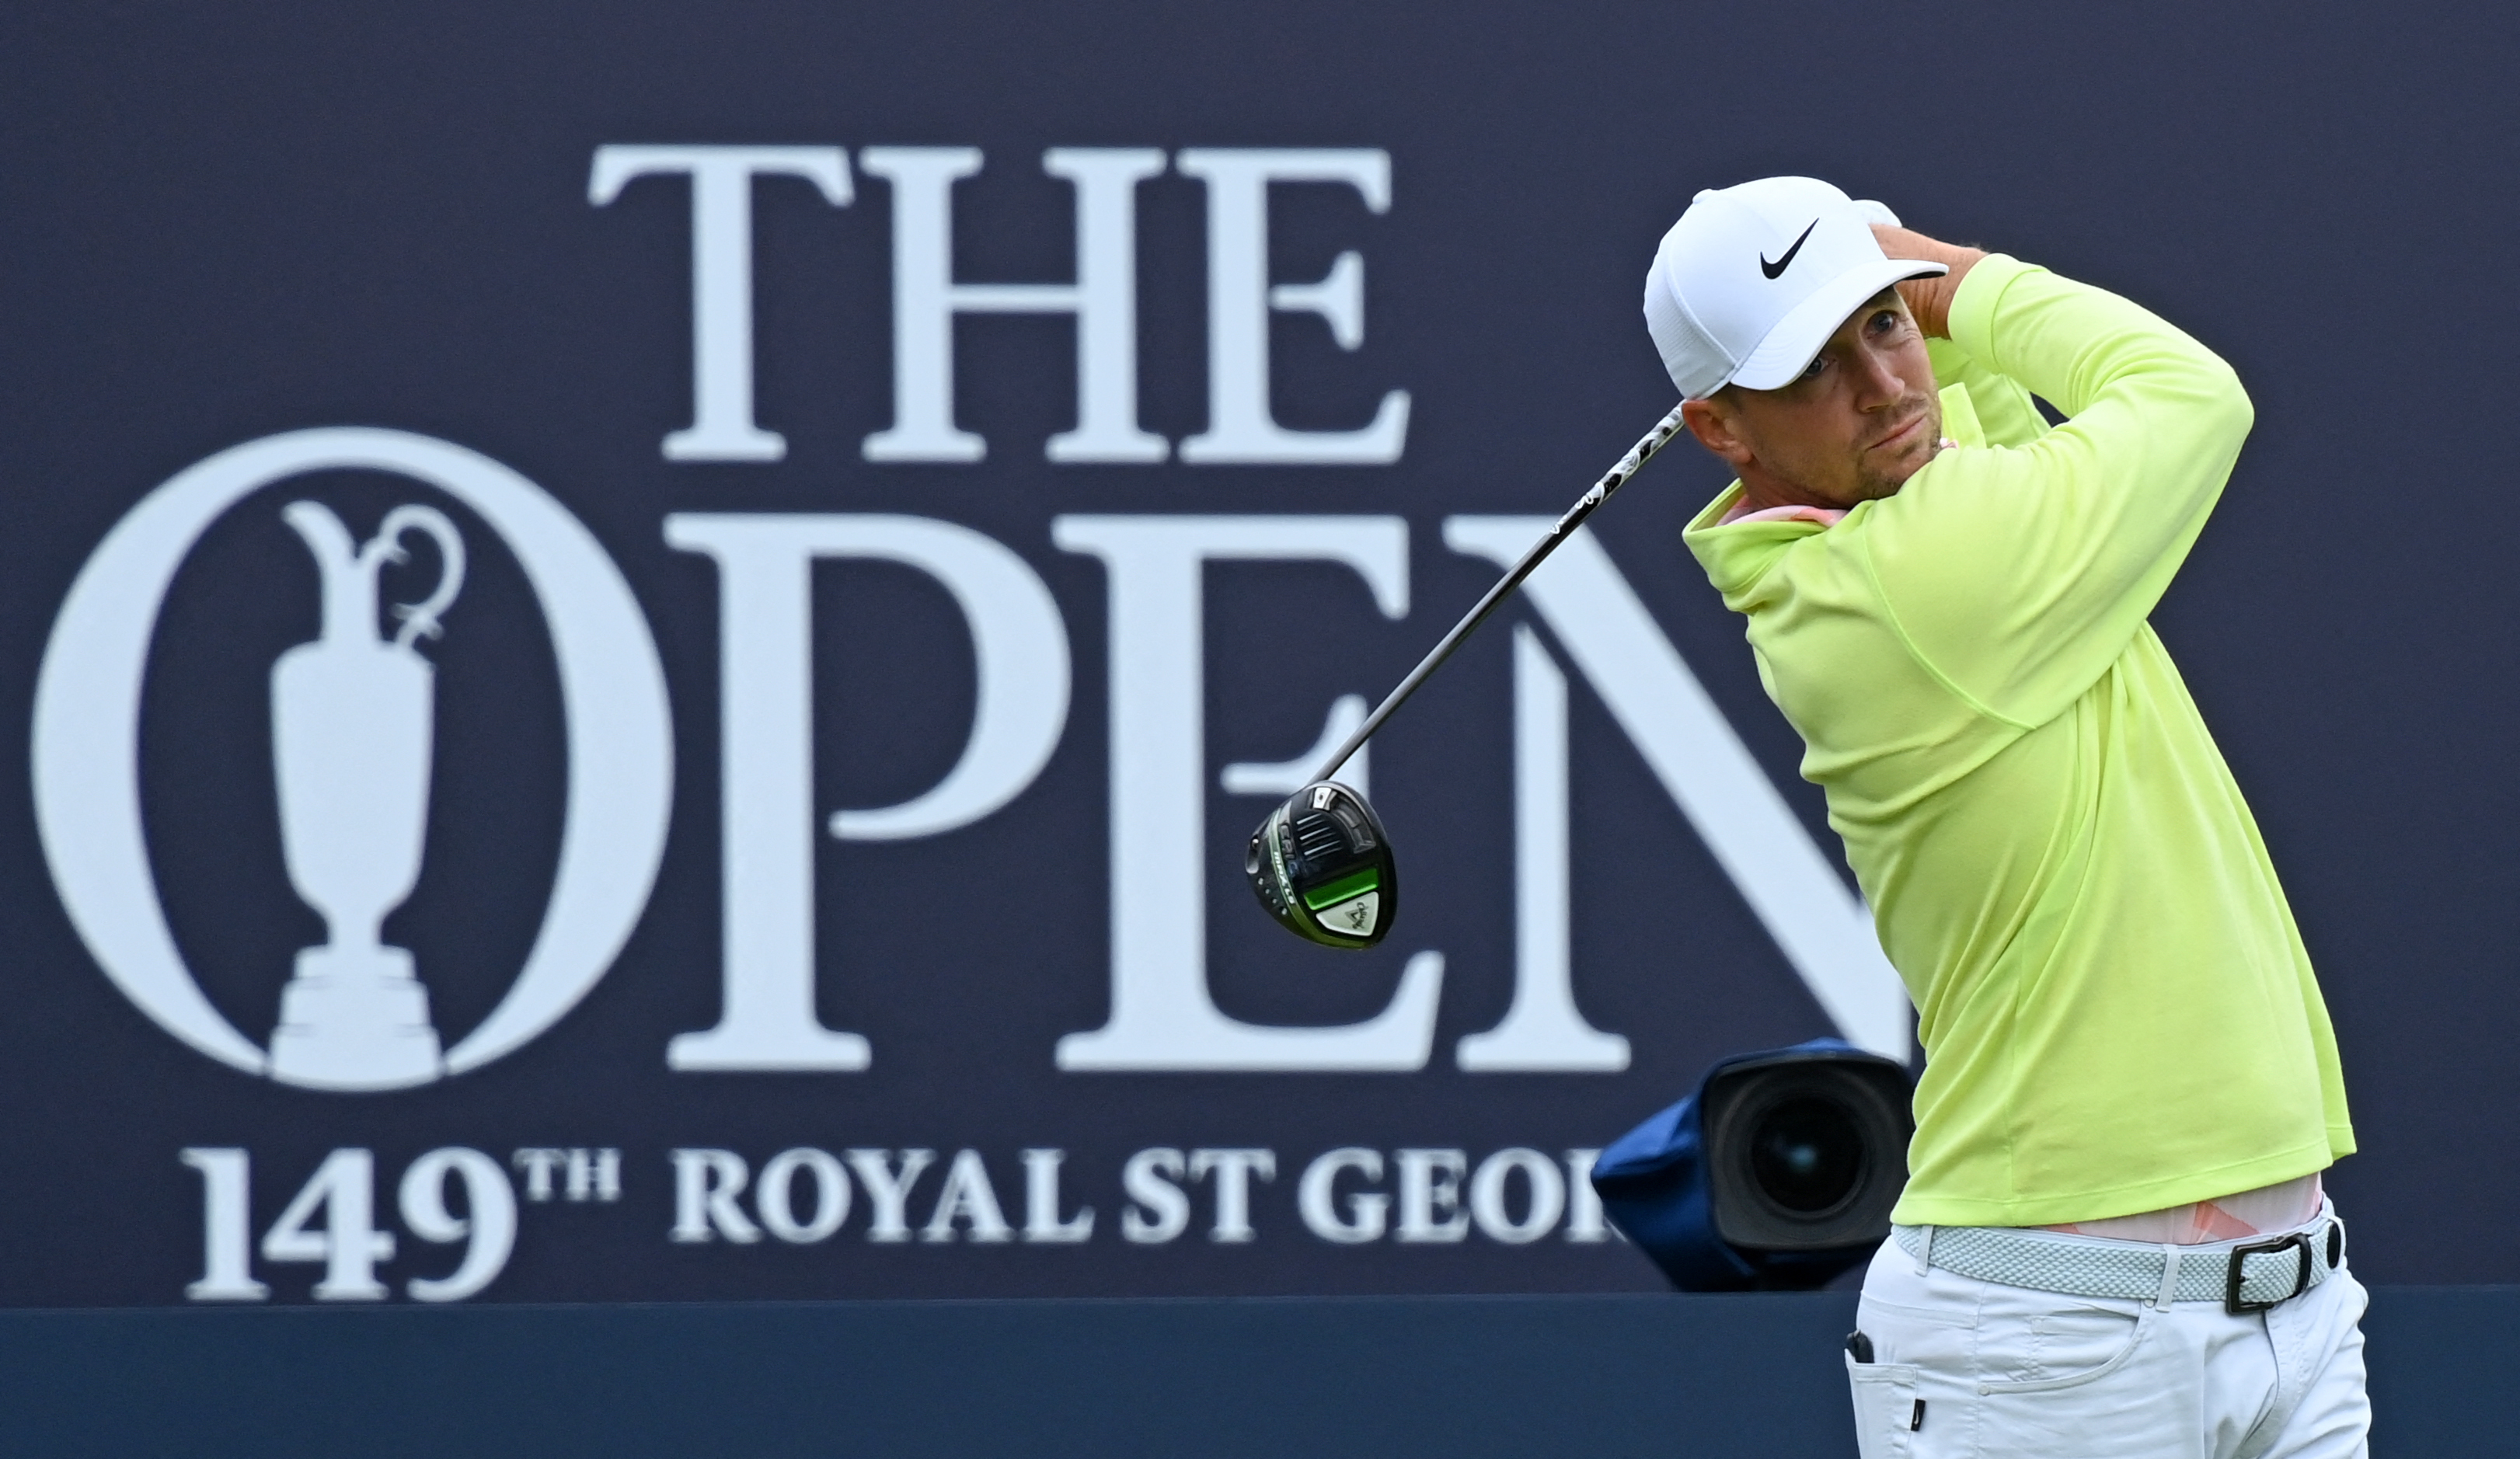 Sweden's Alex Noren watches his drive from the 1st tee during a practice round for The 149th British Open Golf Championship at Royal St George's, Sandwich in south-east England on July 14, 2021.